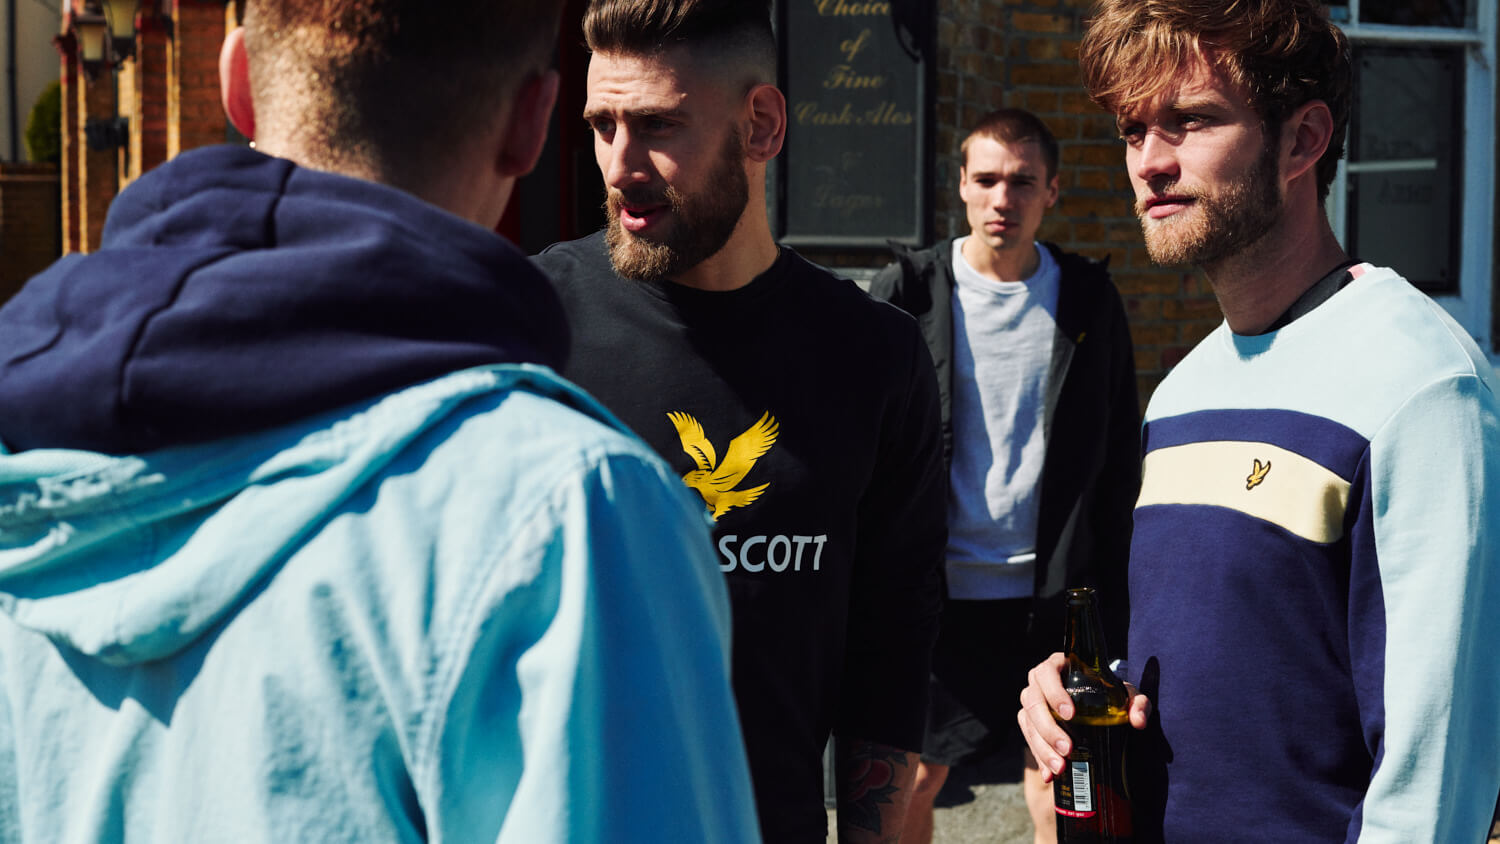 Group of lads stand outside pub by lifestyle photographer Tim Cole